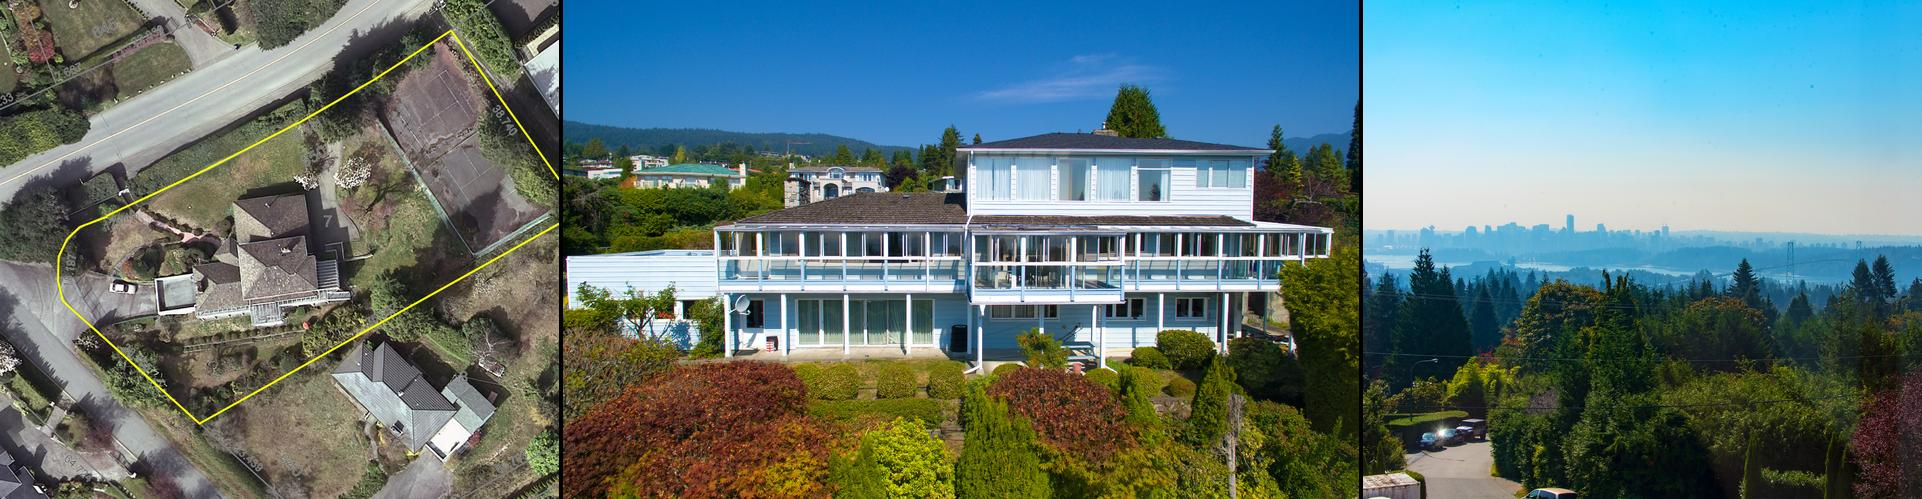 Luxury West Vancouver Real Estate And Homes Vancouvers Listings - World-class-canterbury-estate-with-oceanviews